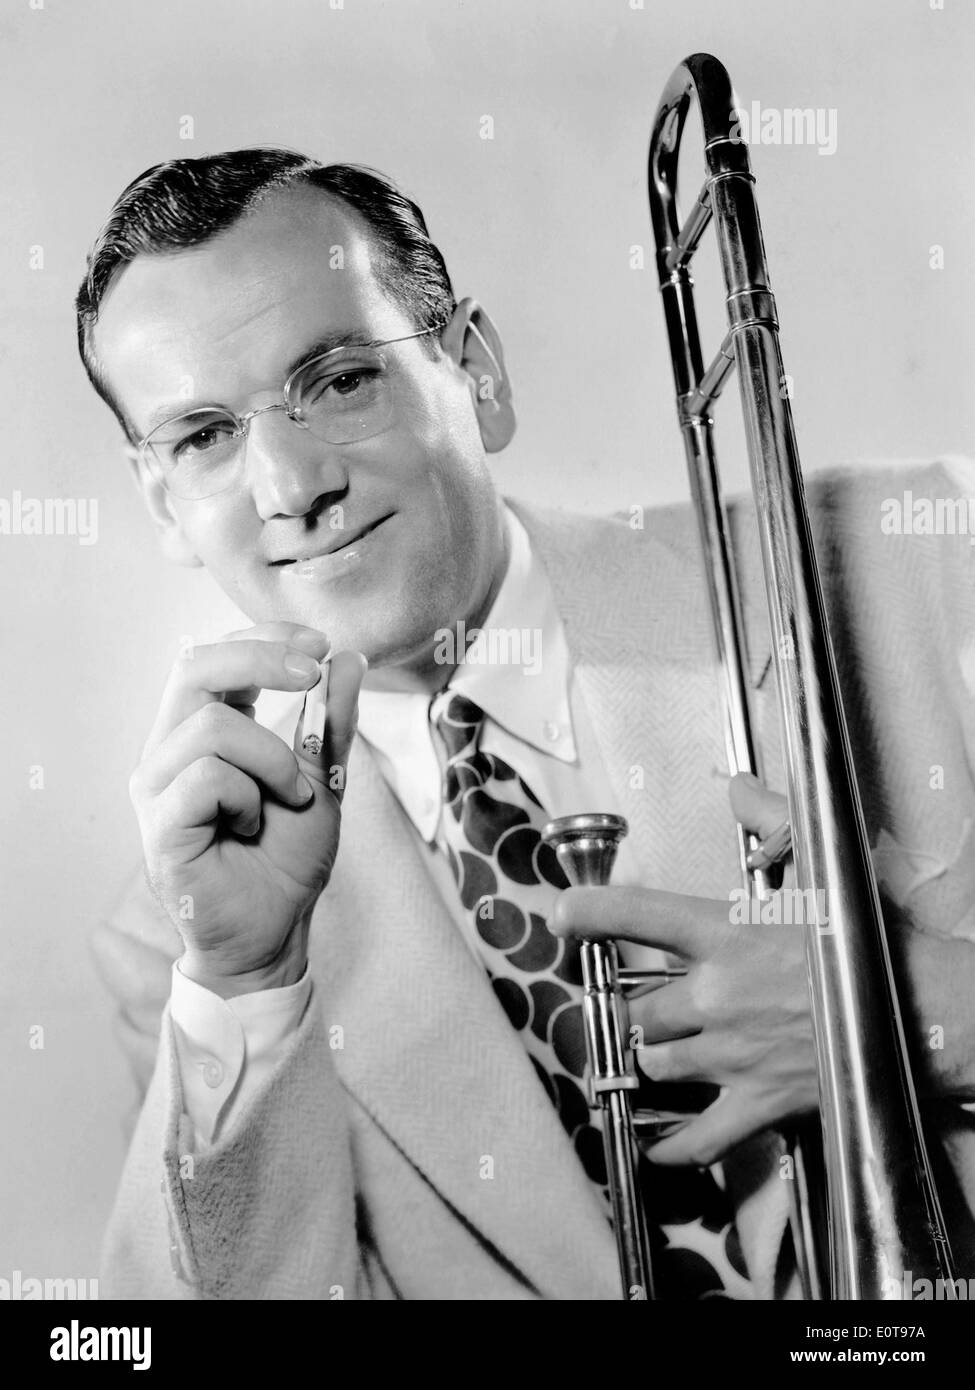 Glenn Miller, Portrait with Cigarette and Trombone, circa 1944 - Stock Image